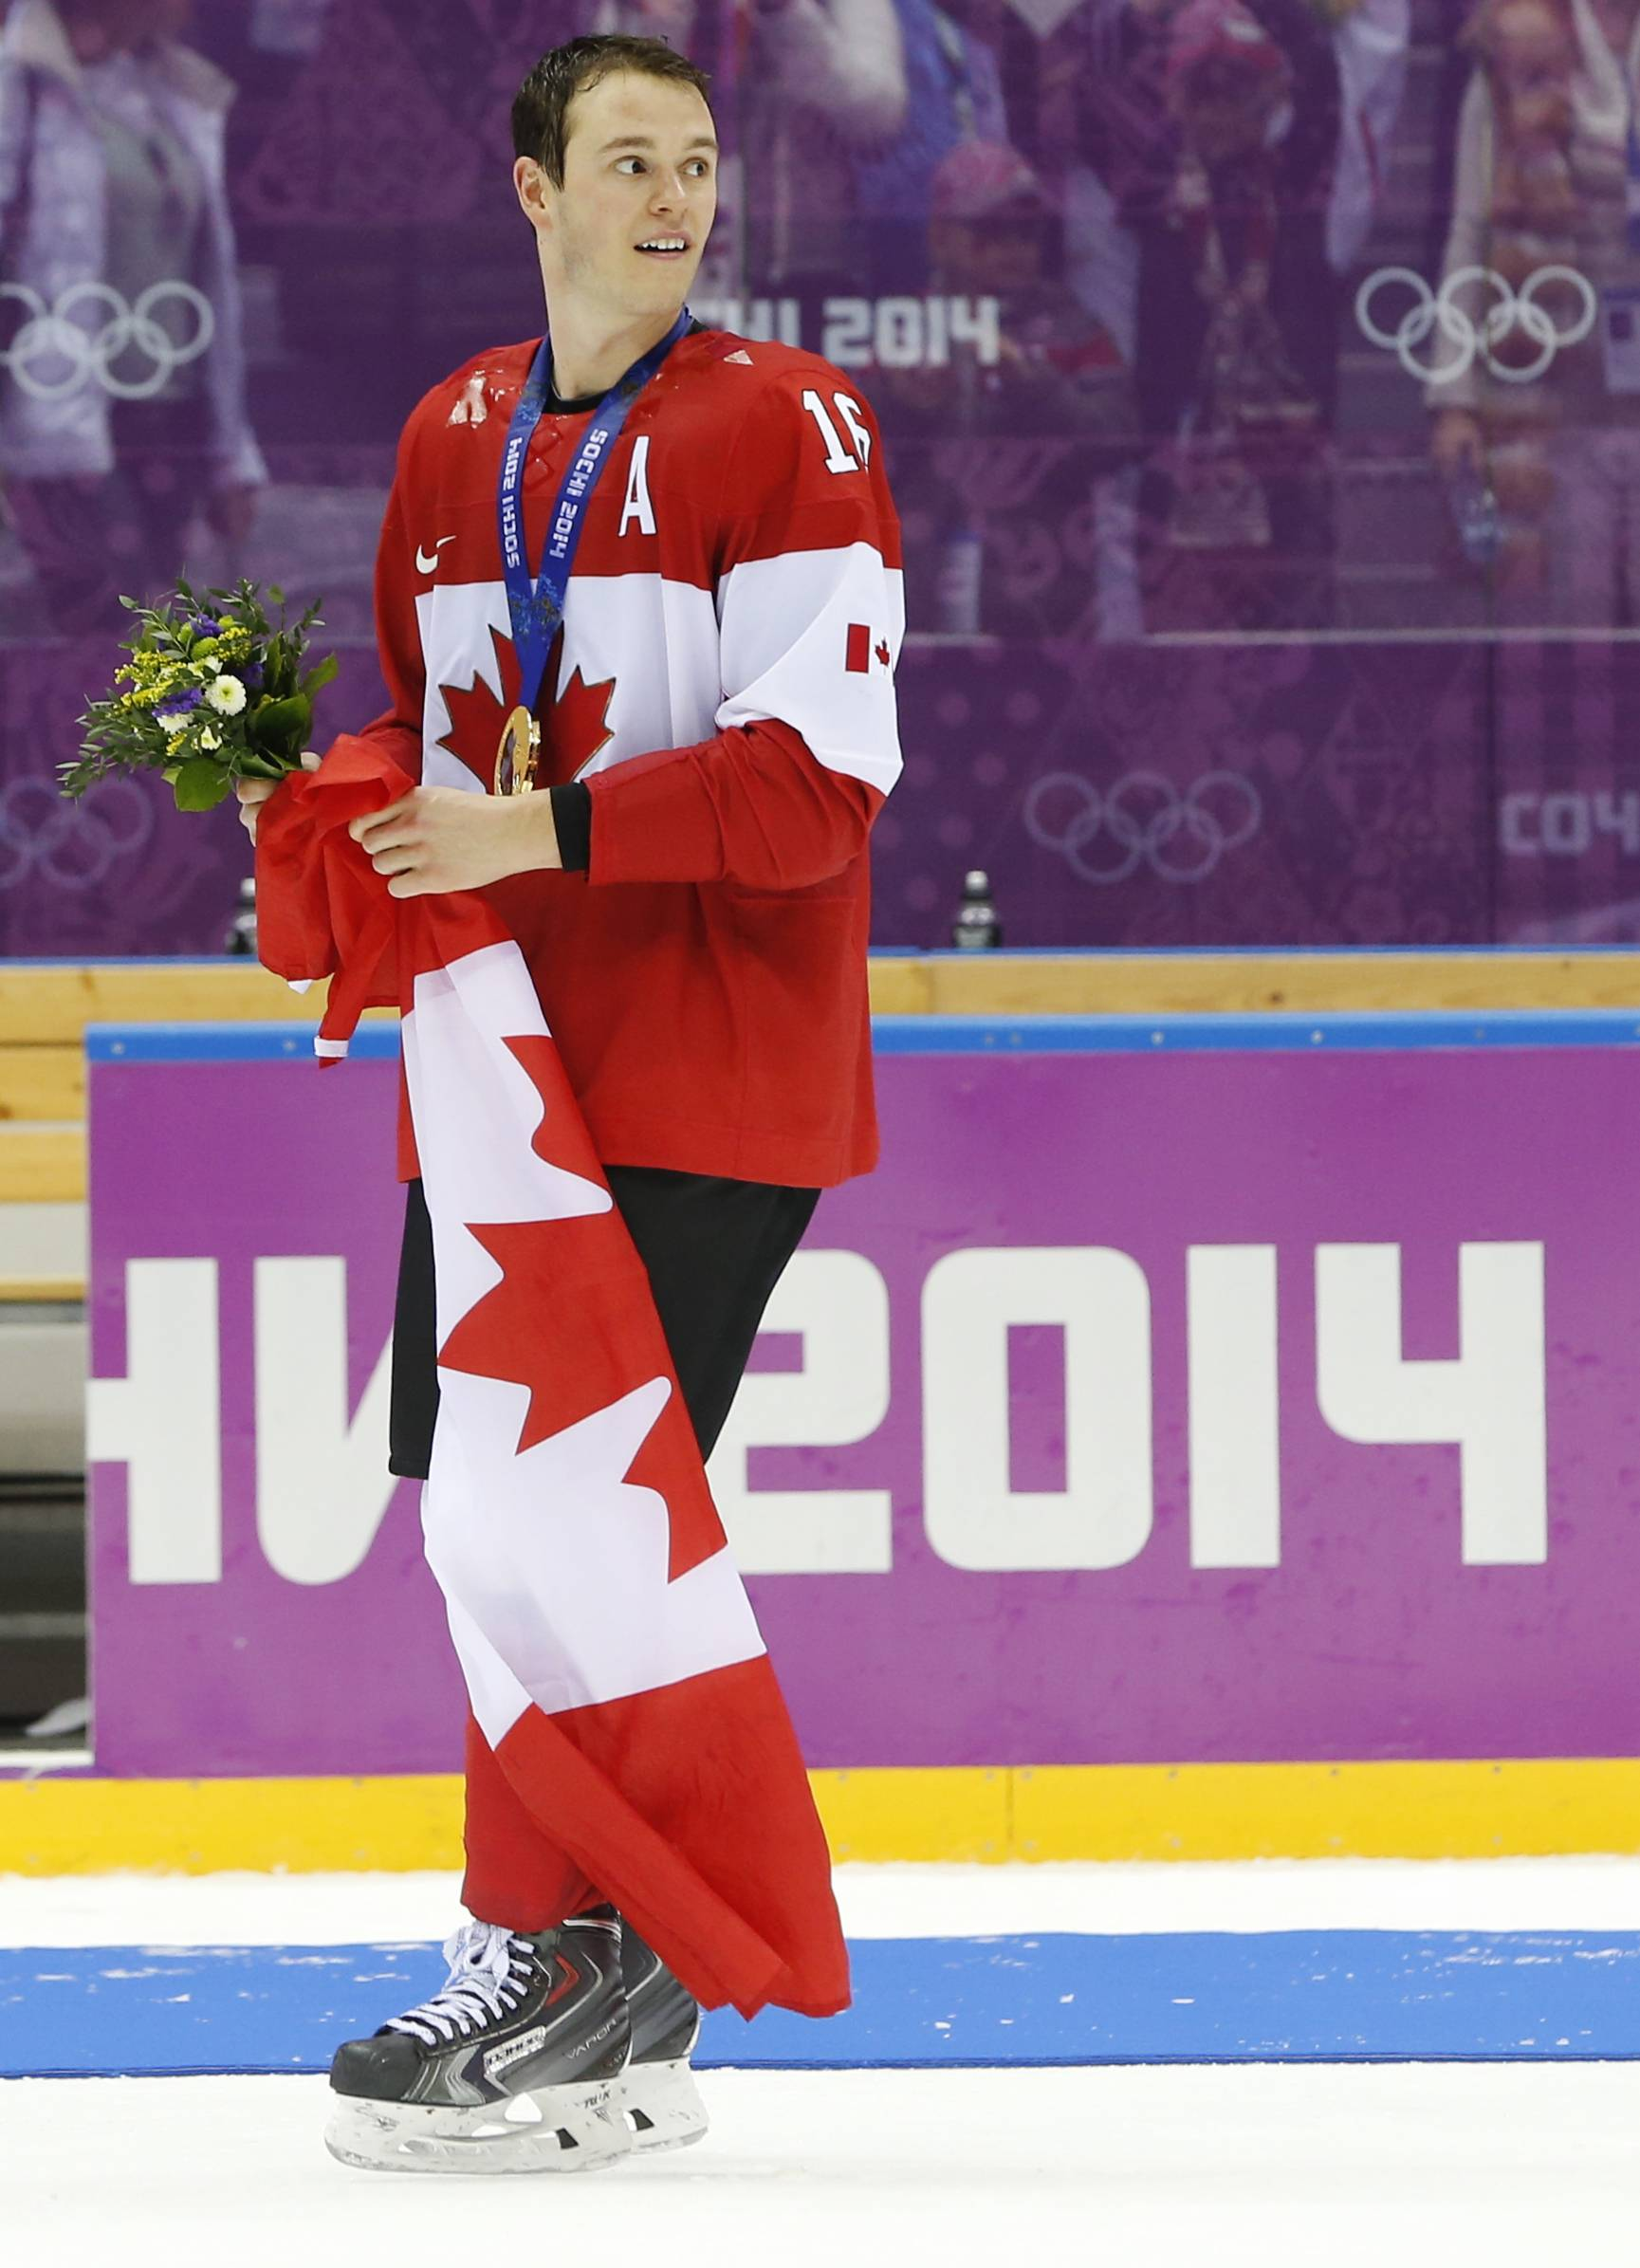 Jonathan Toews of Canada (16) skates with the Canadian flag after the gold medal men's ice hockey game at the 2014 Winter Olympics, Sunday, Feb. 23, 2014, in Sochi, Russia. Canada defeated Sweden 3-0 to win the gold medal.